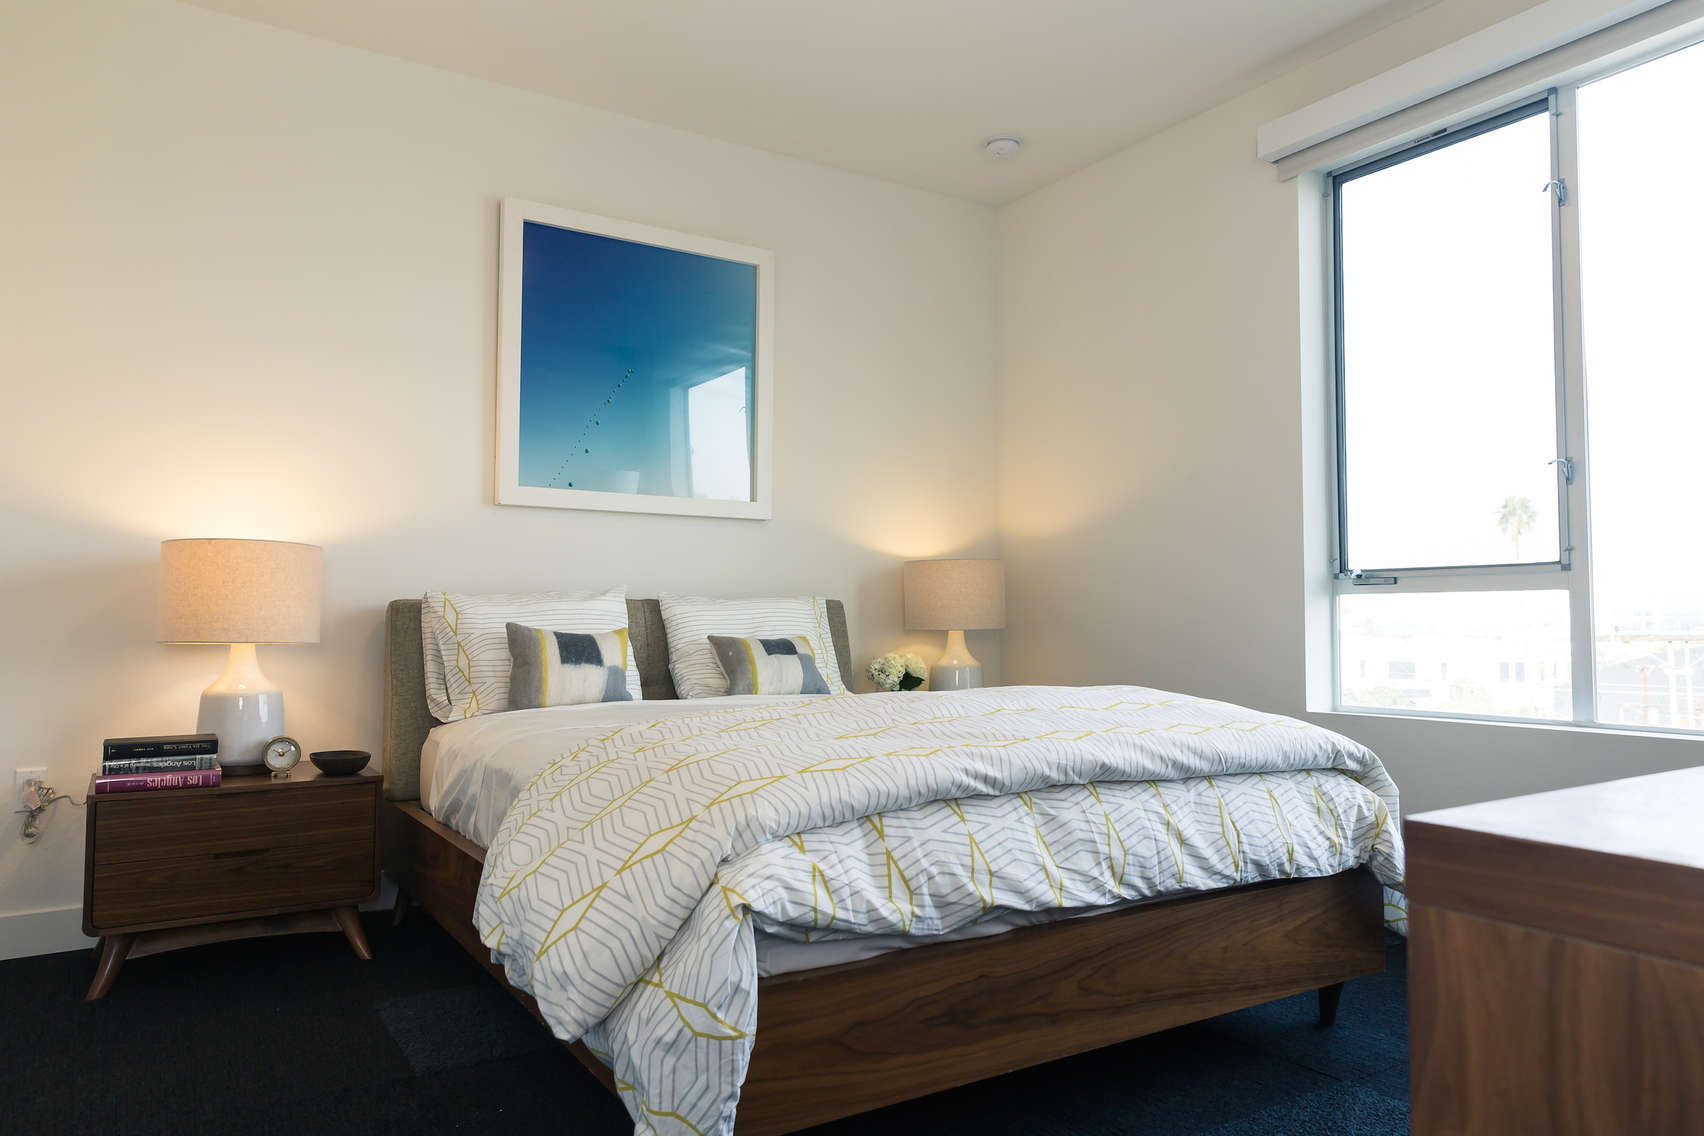 Apartments In Eye Catching Frame Hollywood Will Rent From